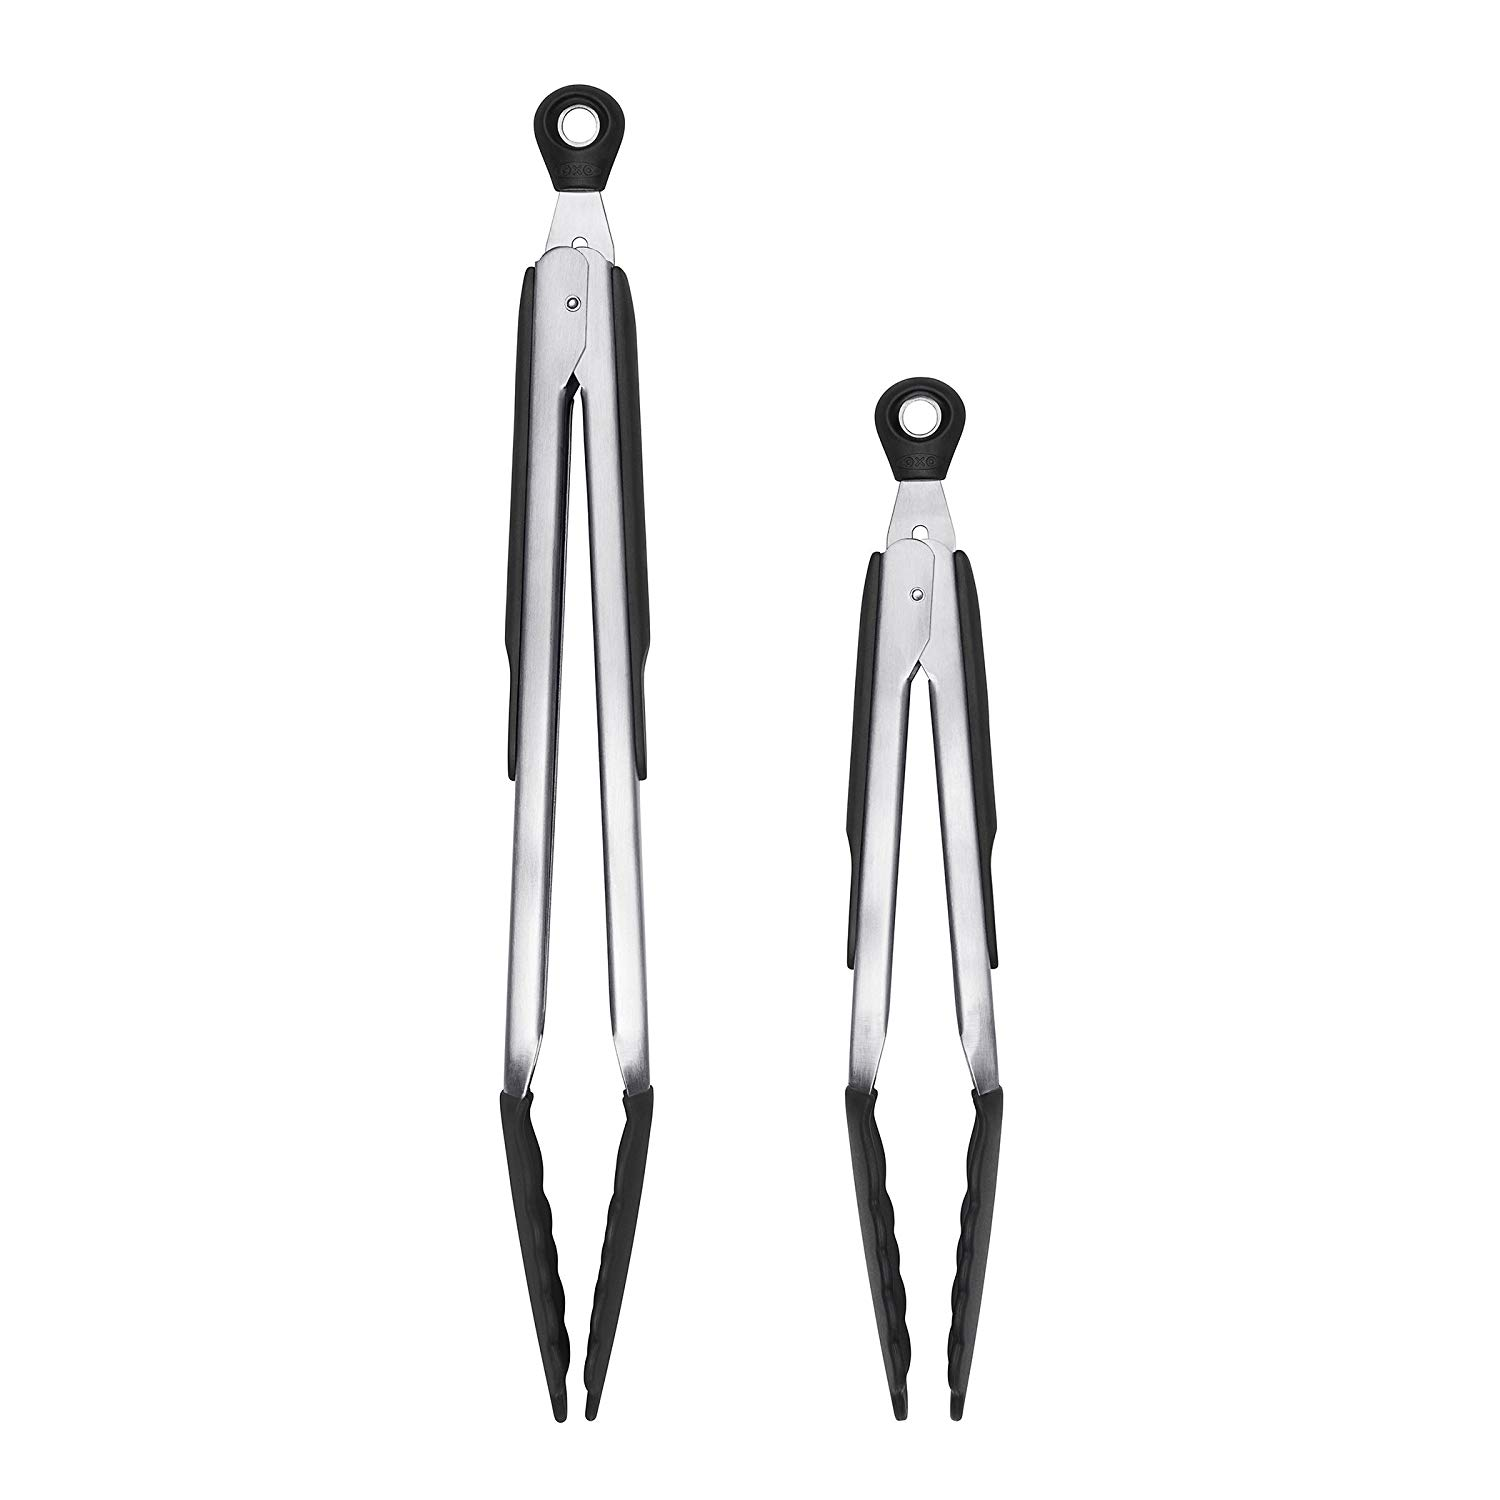 Oxo good grips 12-inch tongs with silicone heads